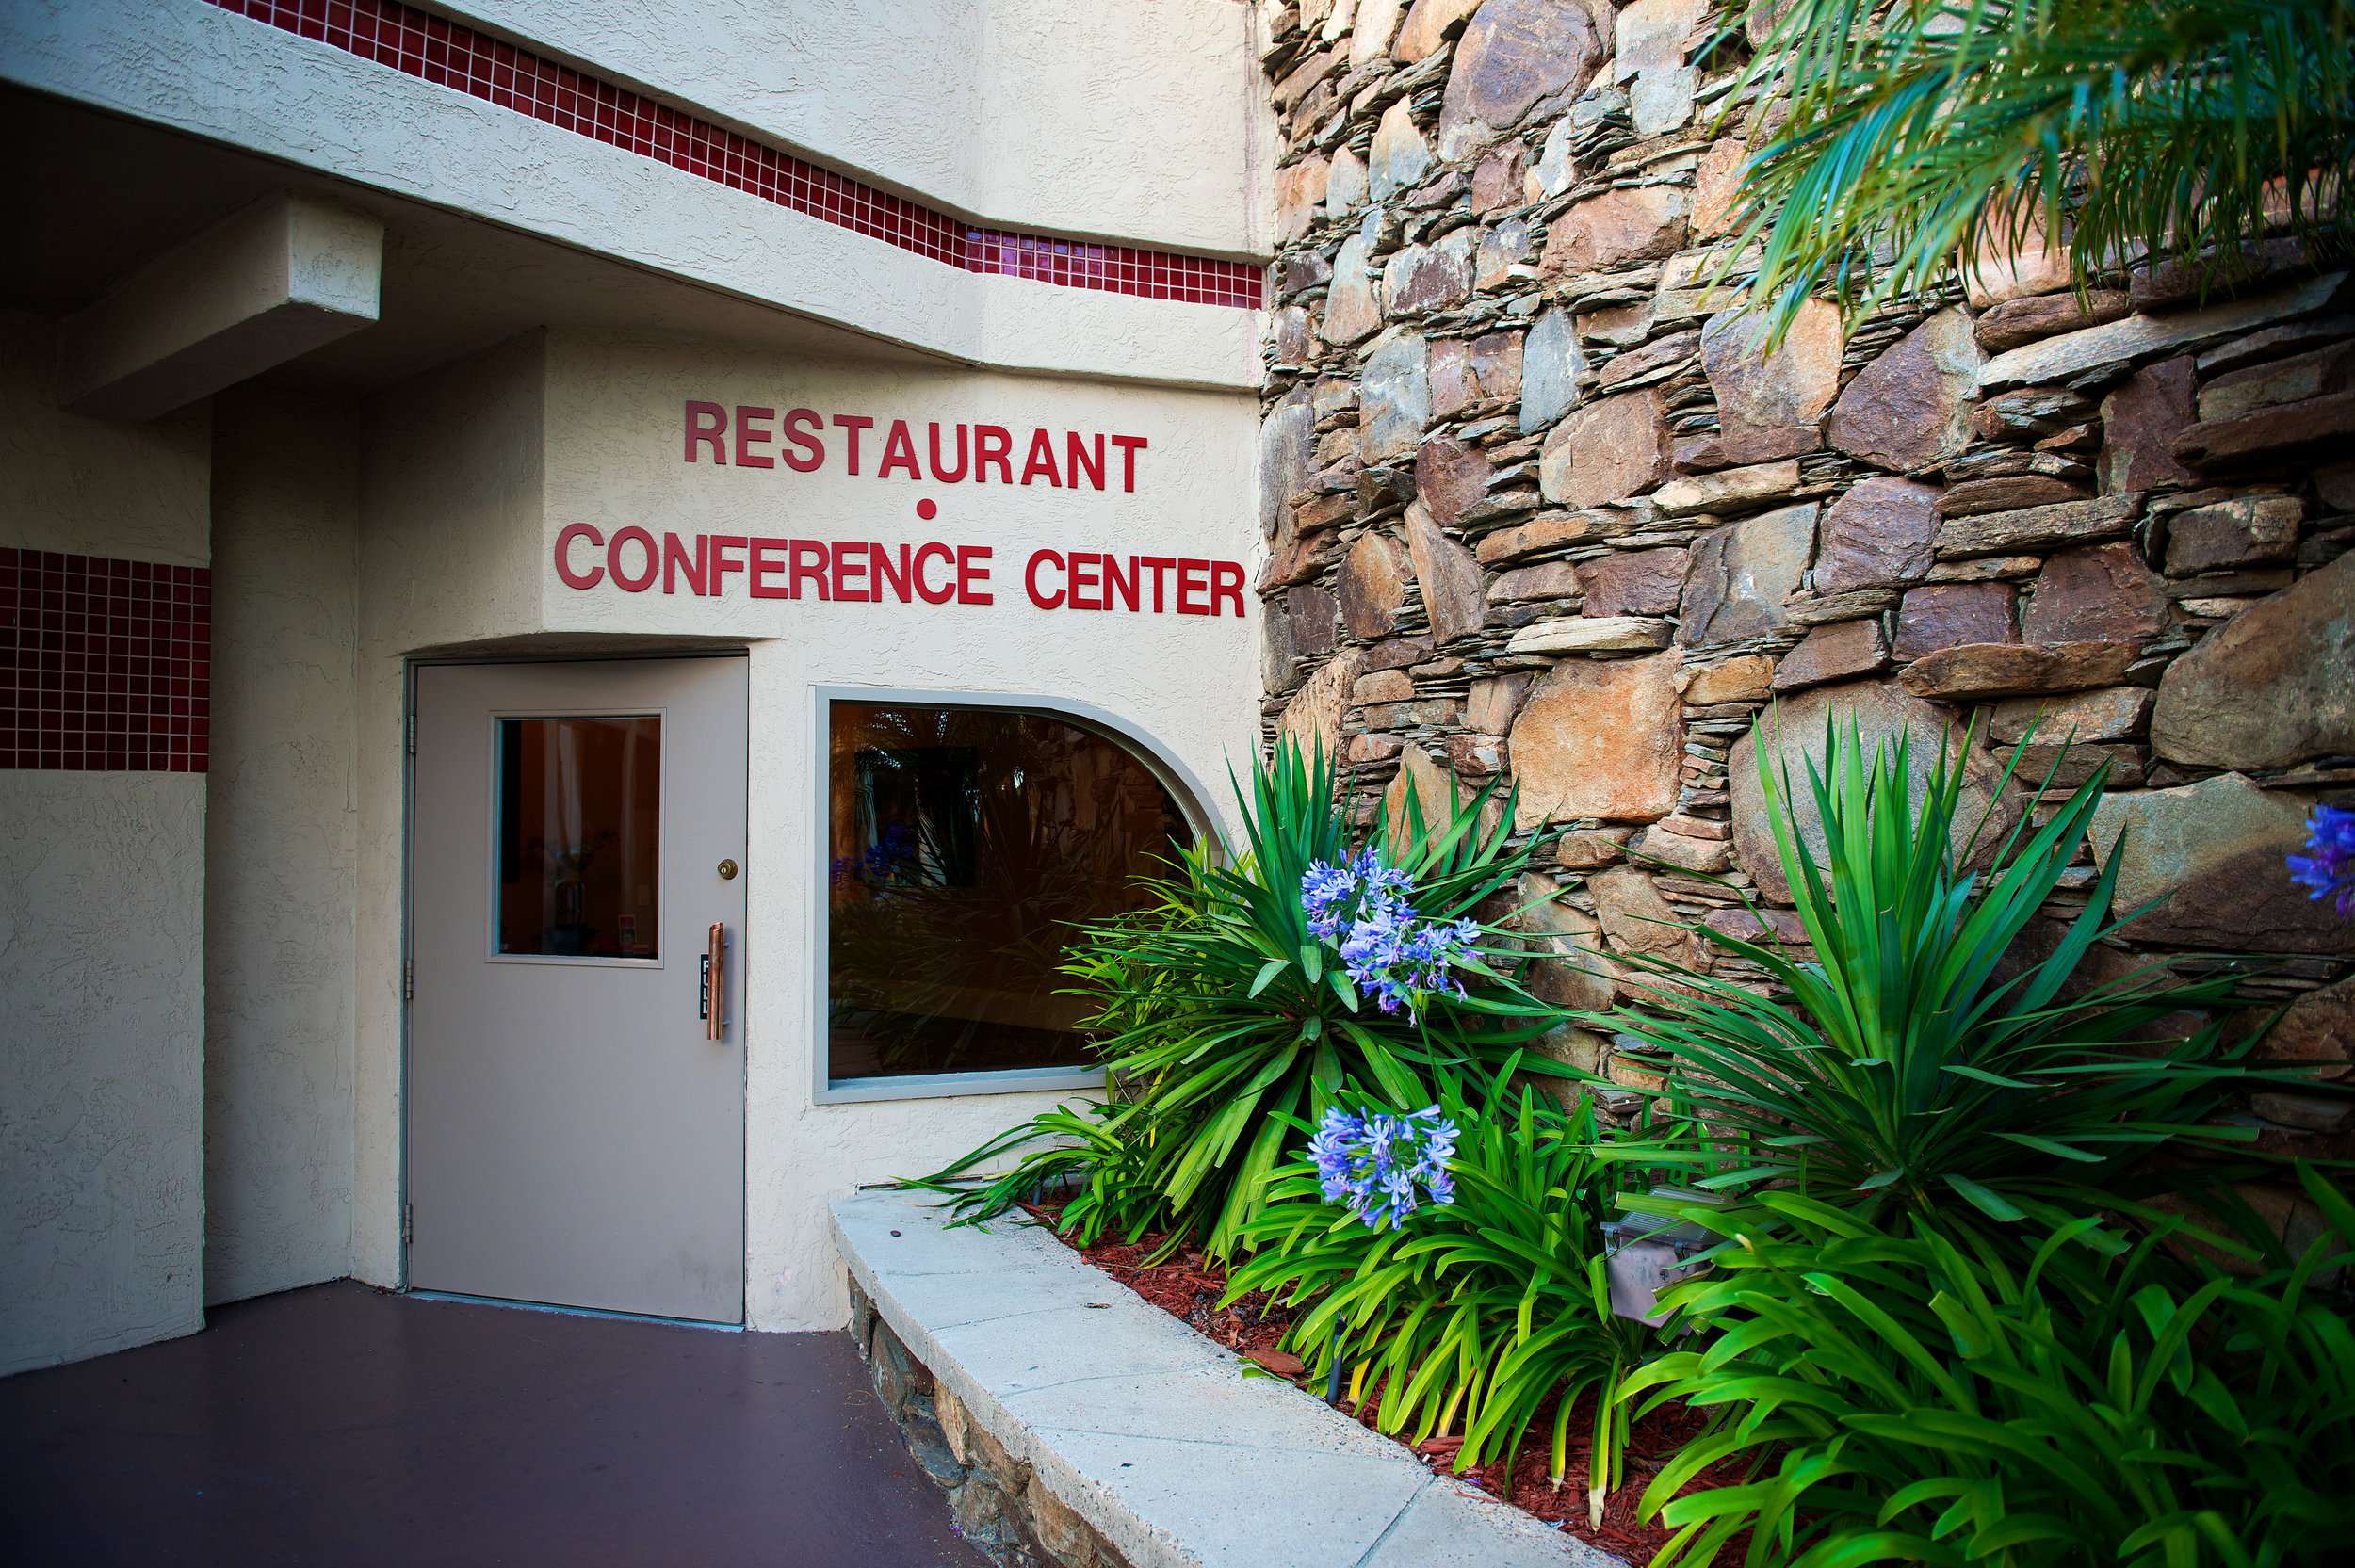 restaurant and conference center entrance